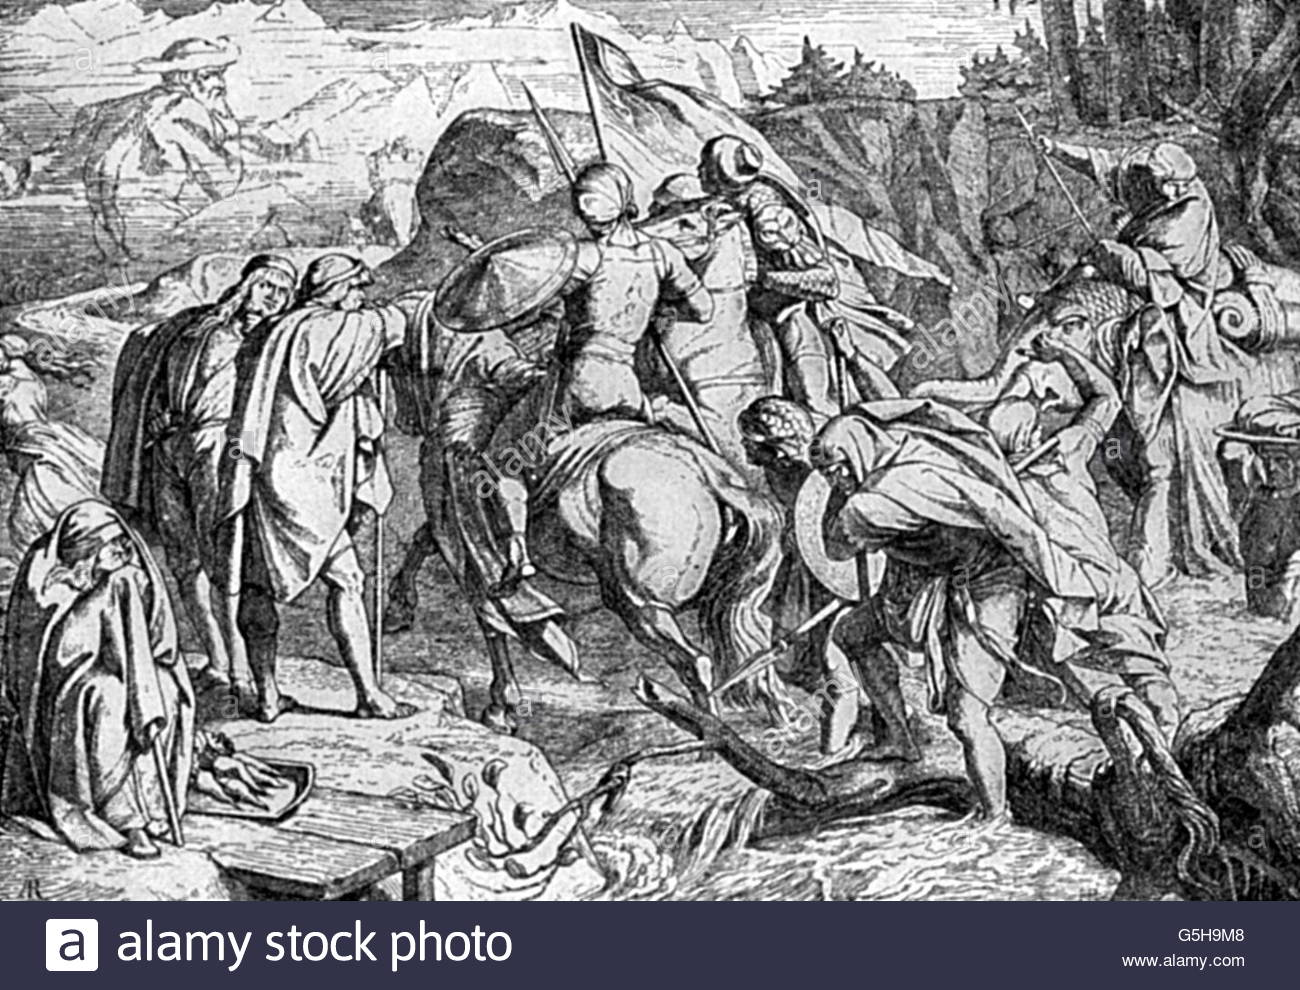 Second Punic War Hannibal And The Carthaginian Army